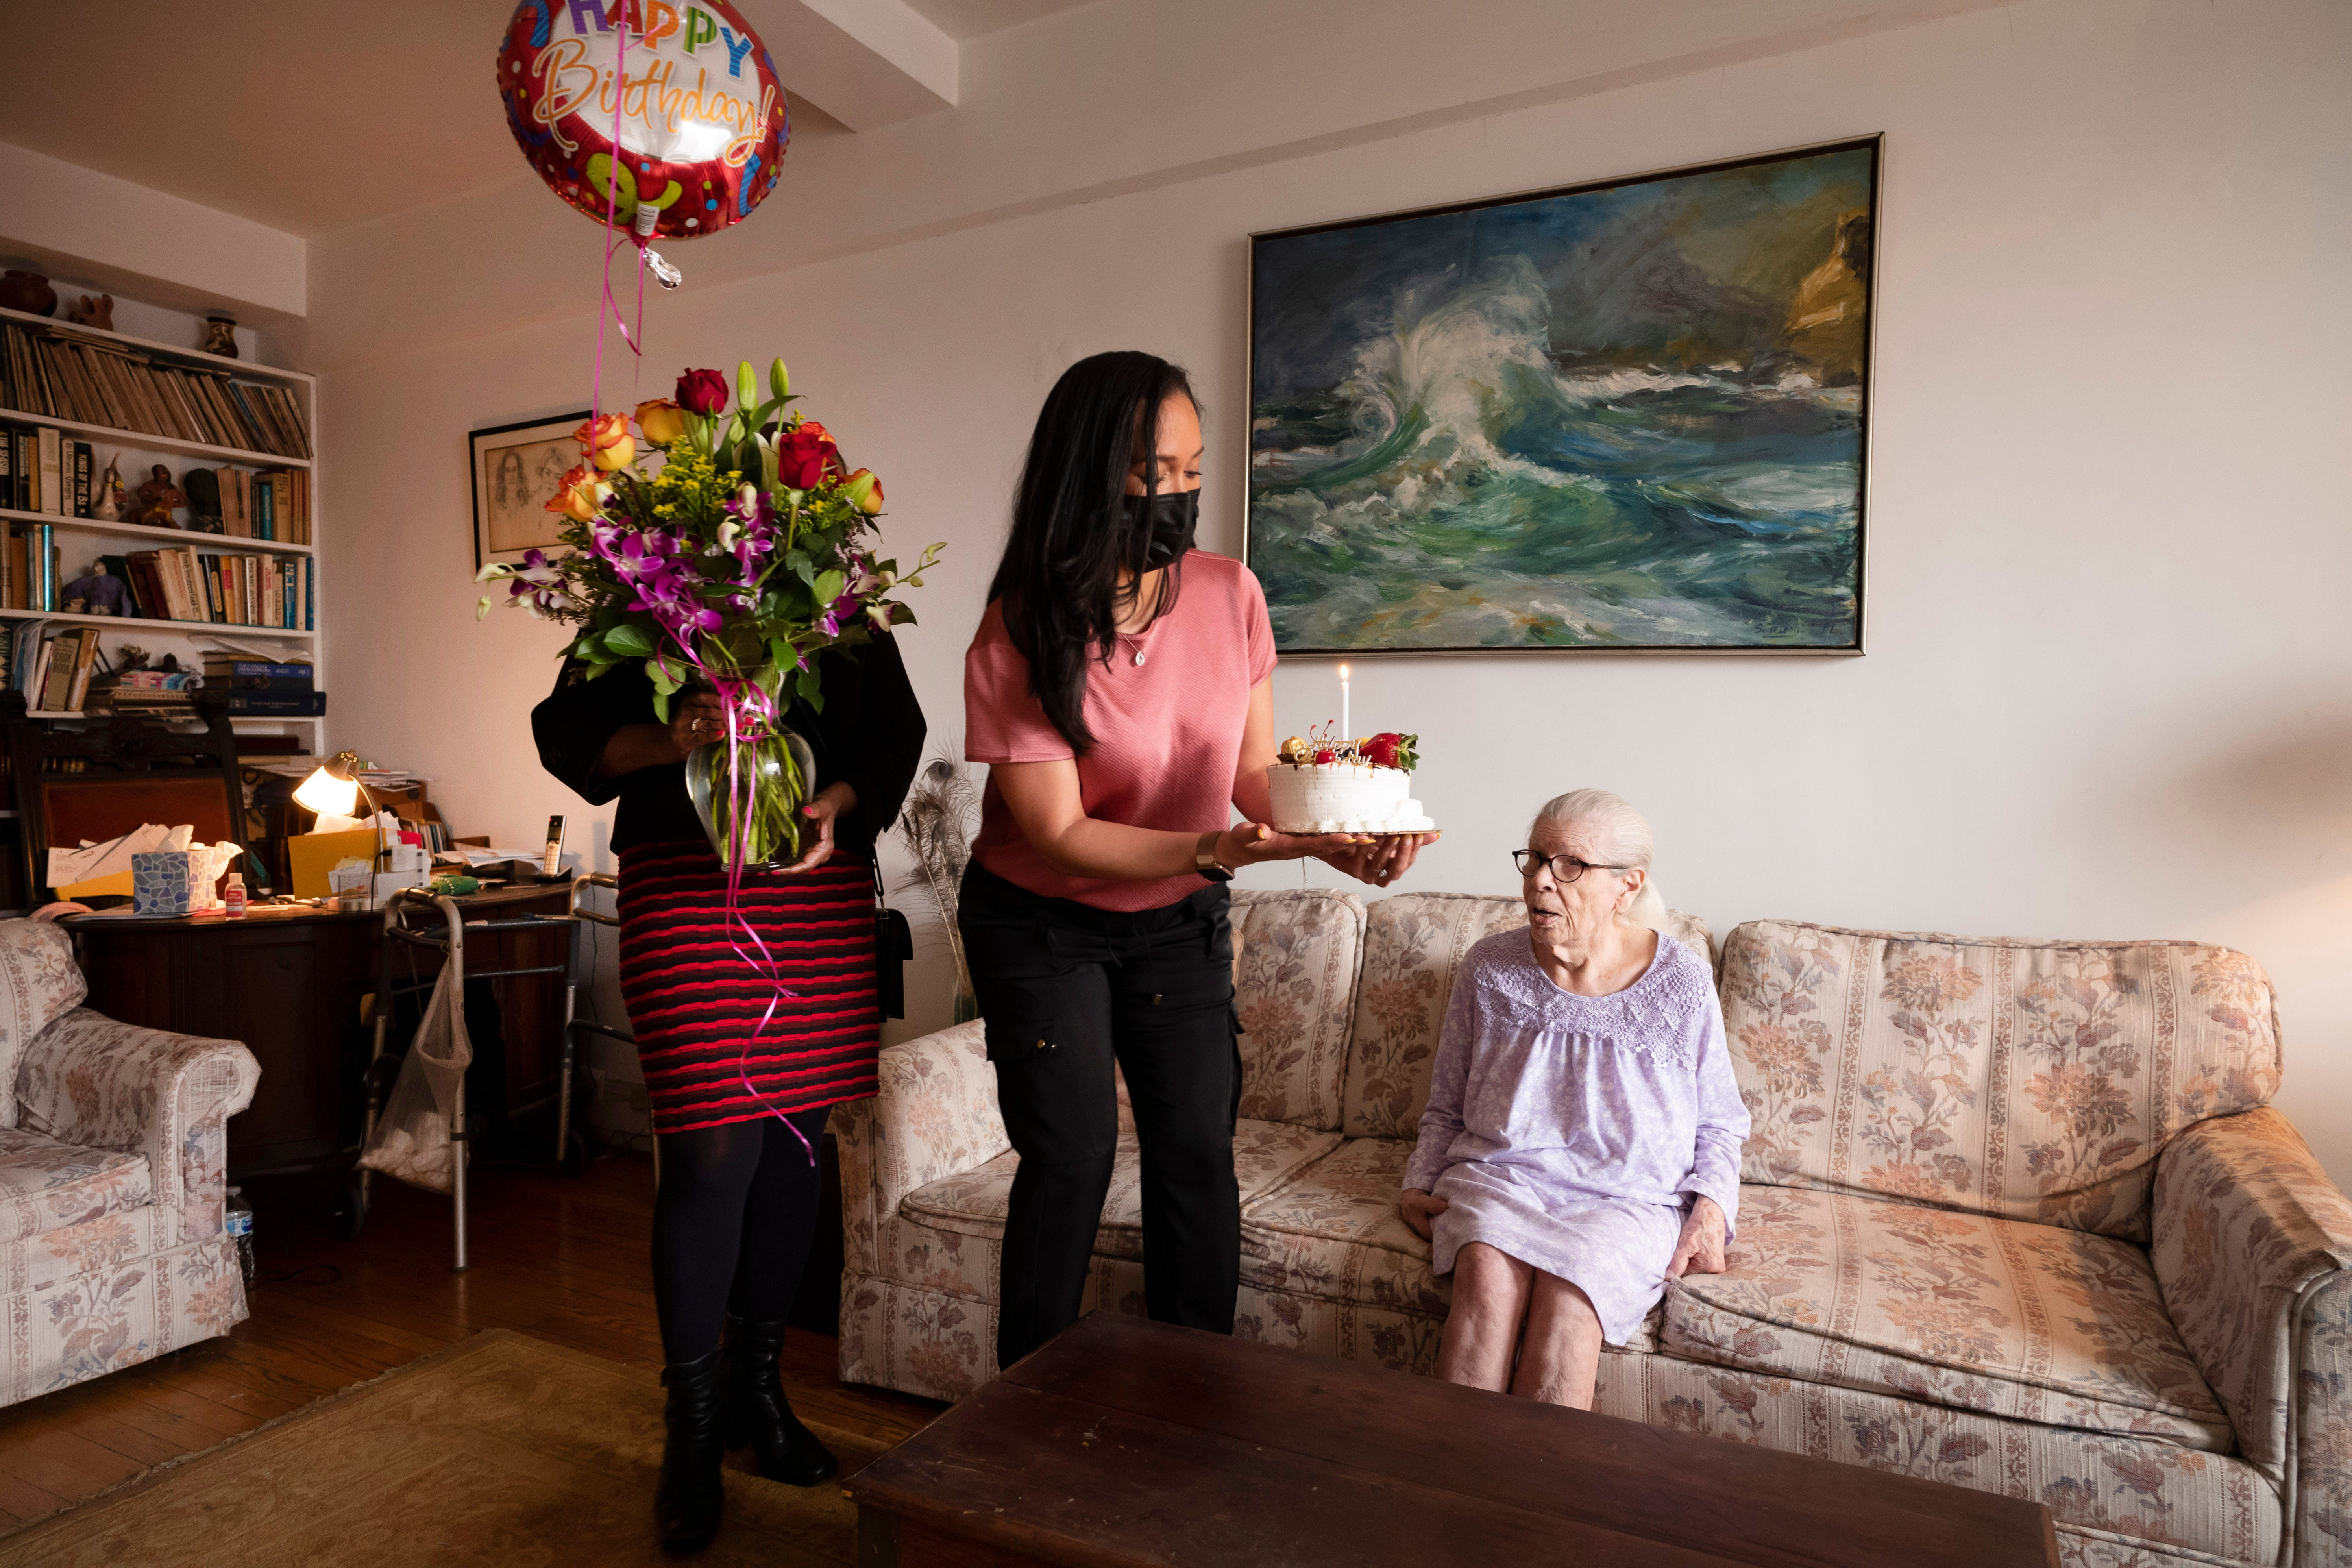 Dolores McGinnis, left, carries flowers, and her co-worker Stacy Munoz-Laporte brings a birthday cake for Josephine Melecio as she celebrates her 110th birthday, Friday, March 26, 2021, in New York. McGinnis and Munoz-Laporte are nurse care managers with RiverSpring Health, a long-term care program that assists the elderly in living independently at home.